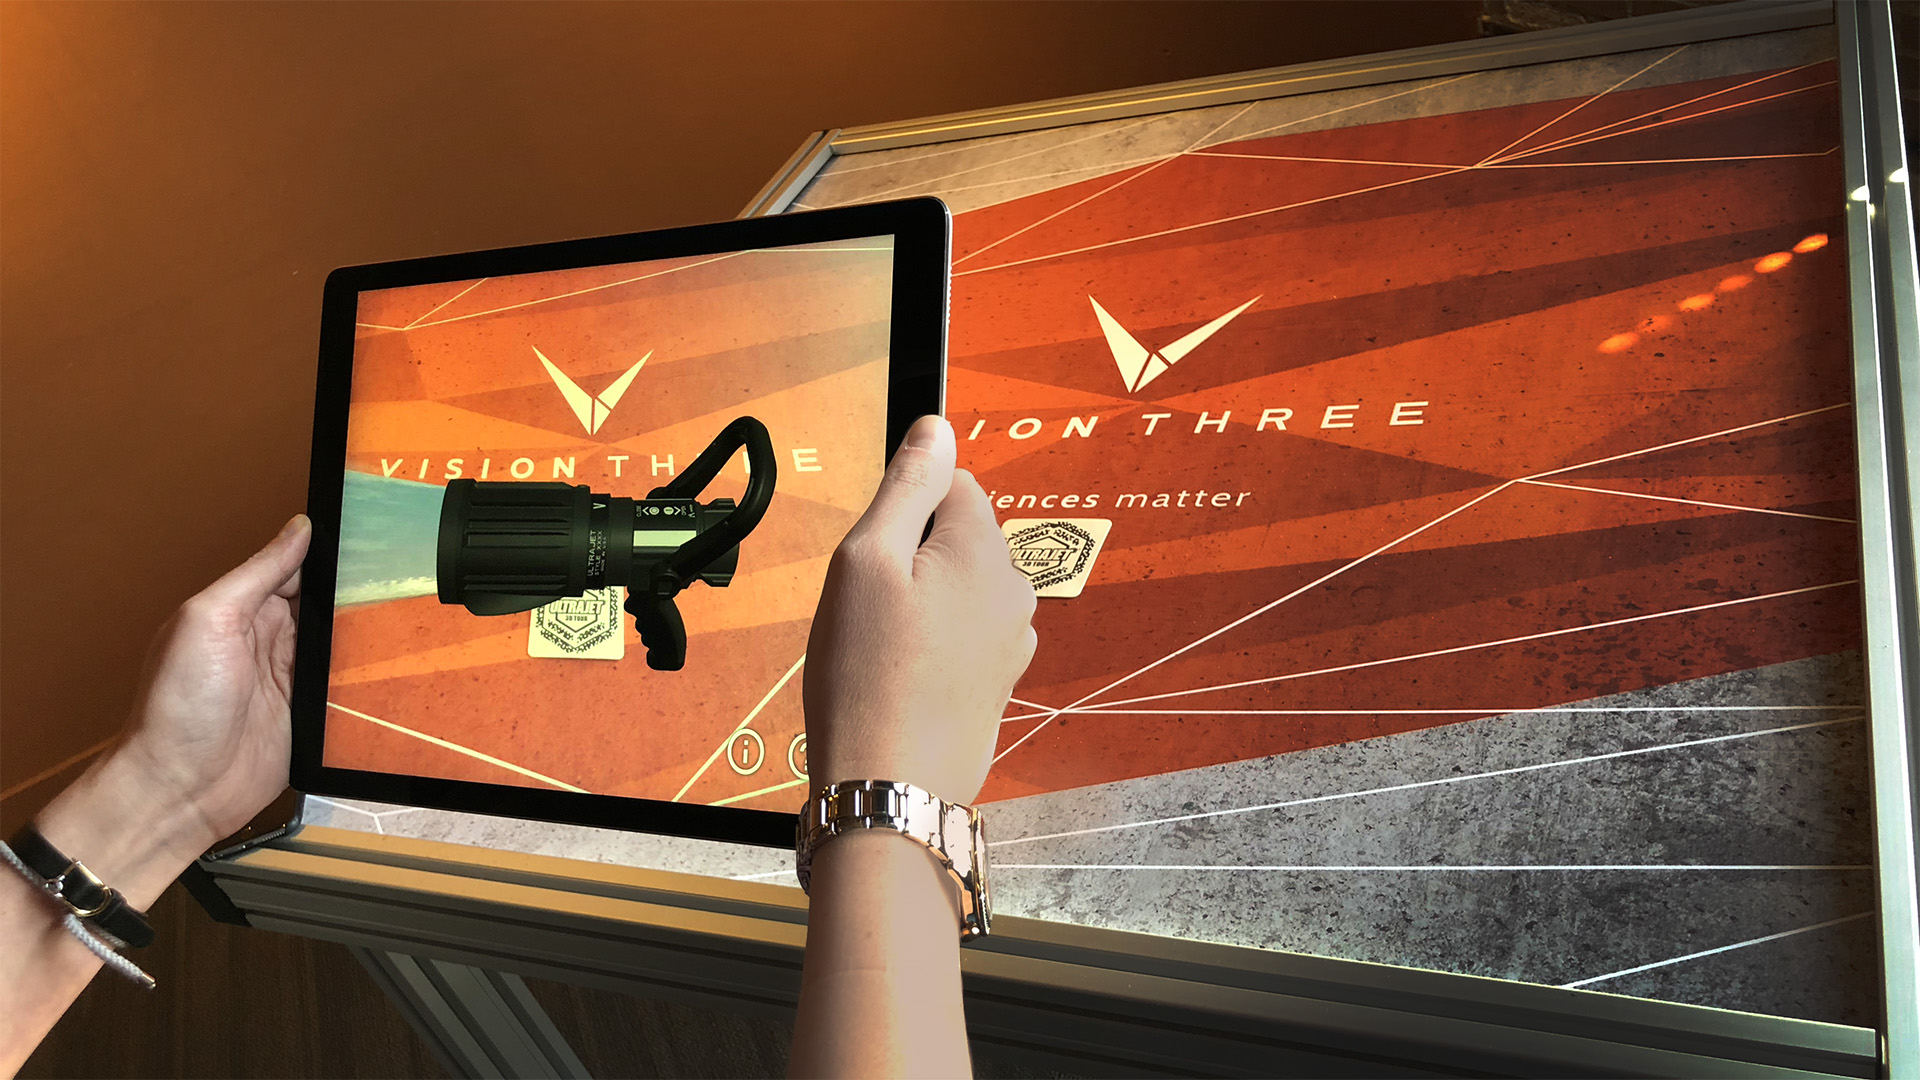 AR offers the opportunity to present and demonstrate a product anywhere, any time.